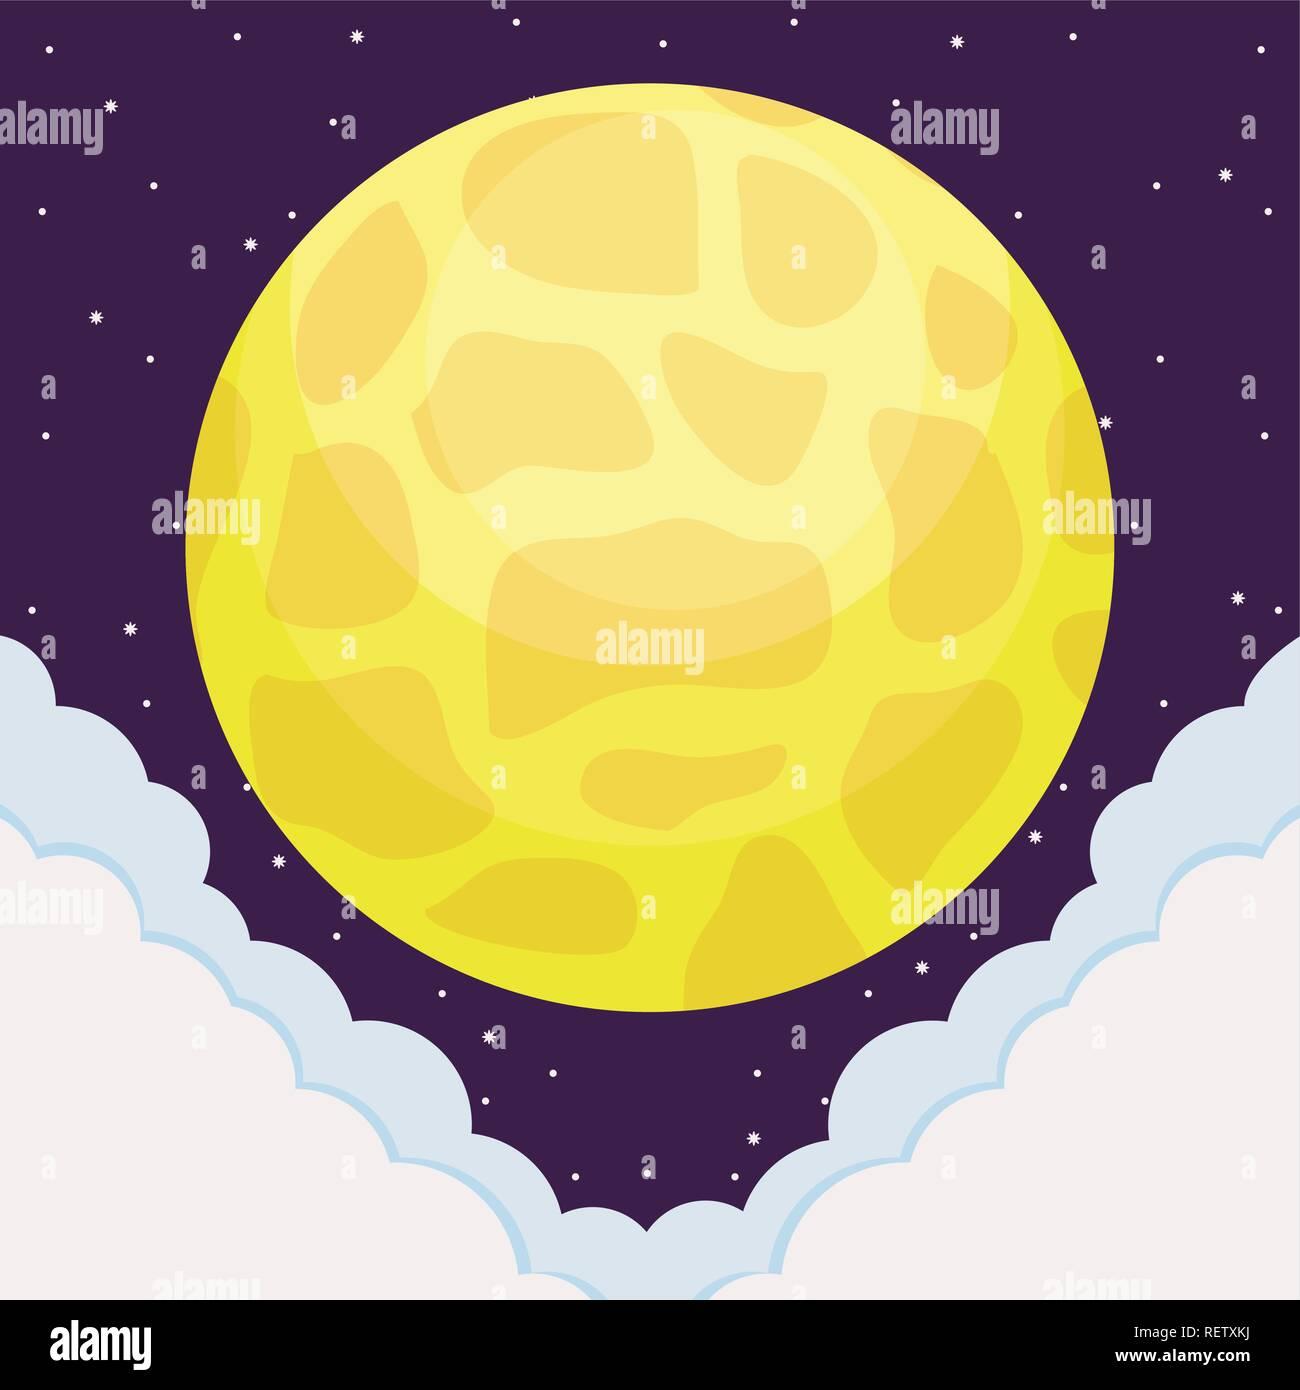 venus planet over space background, vector illustration - Stock Image